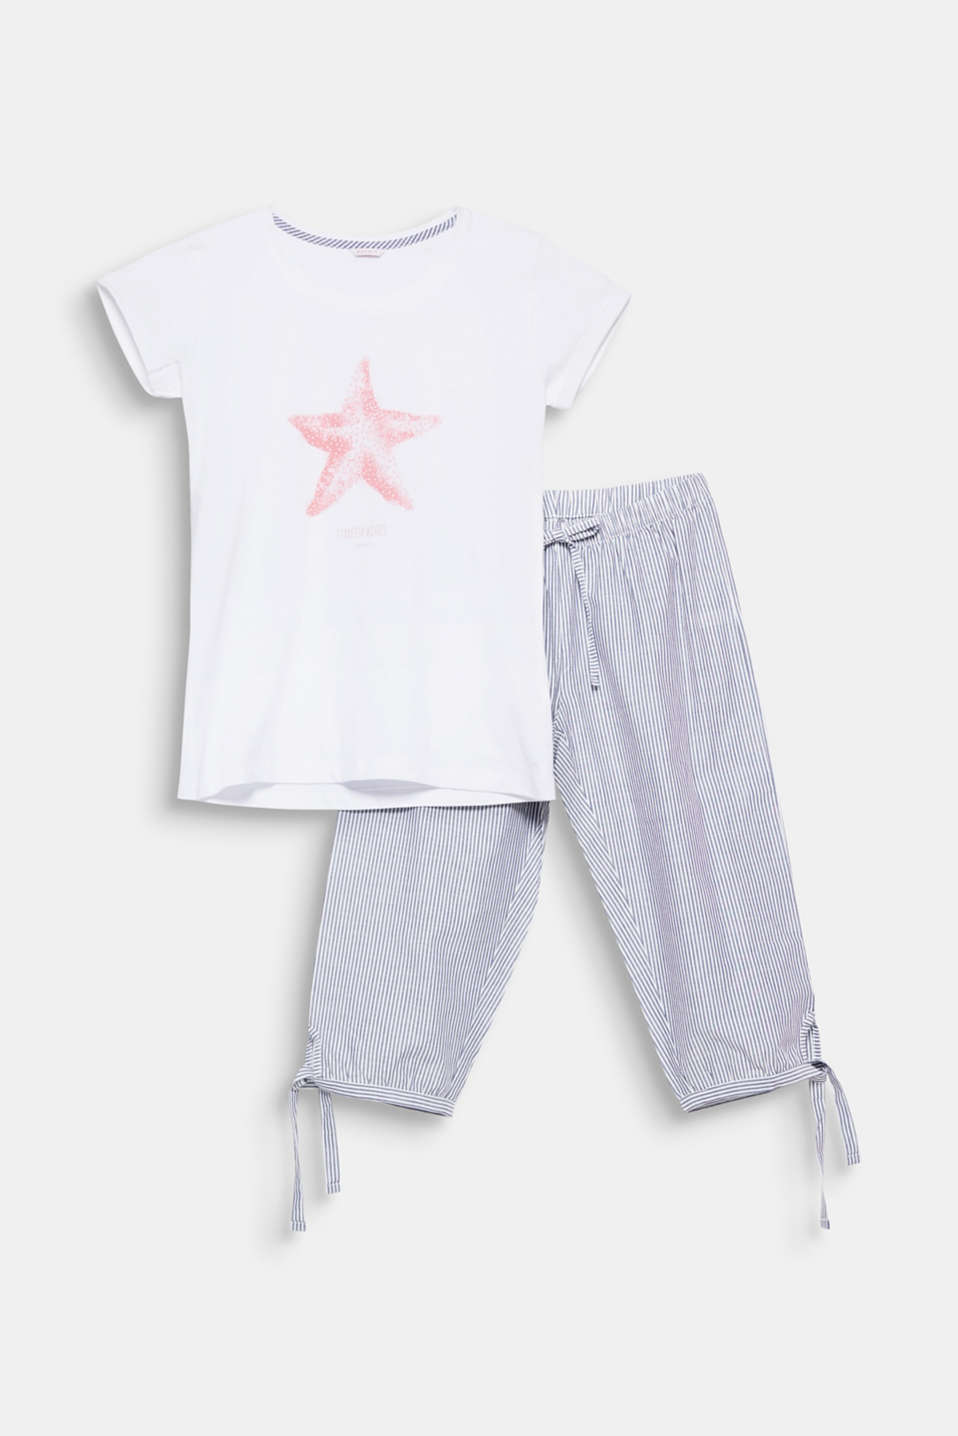 Velvety nautical look: The starfish print on the top and the woven capris with fine stripes give these airy, lightweight cotton pyjamas their summery flair!